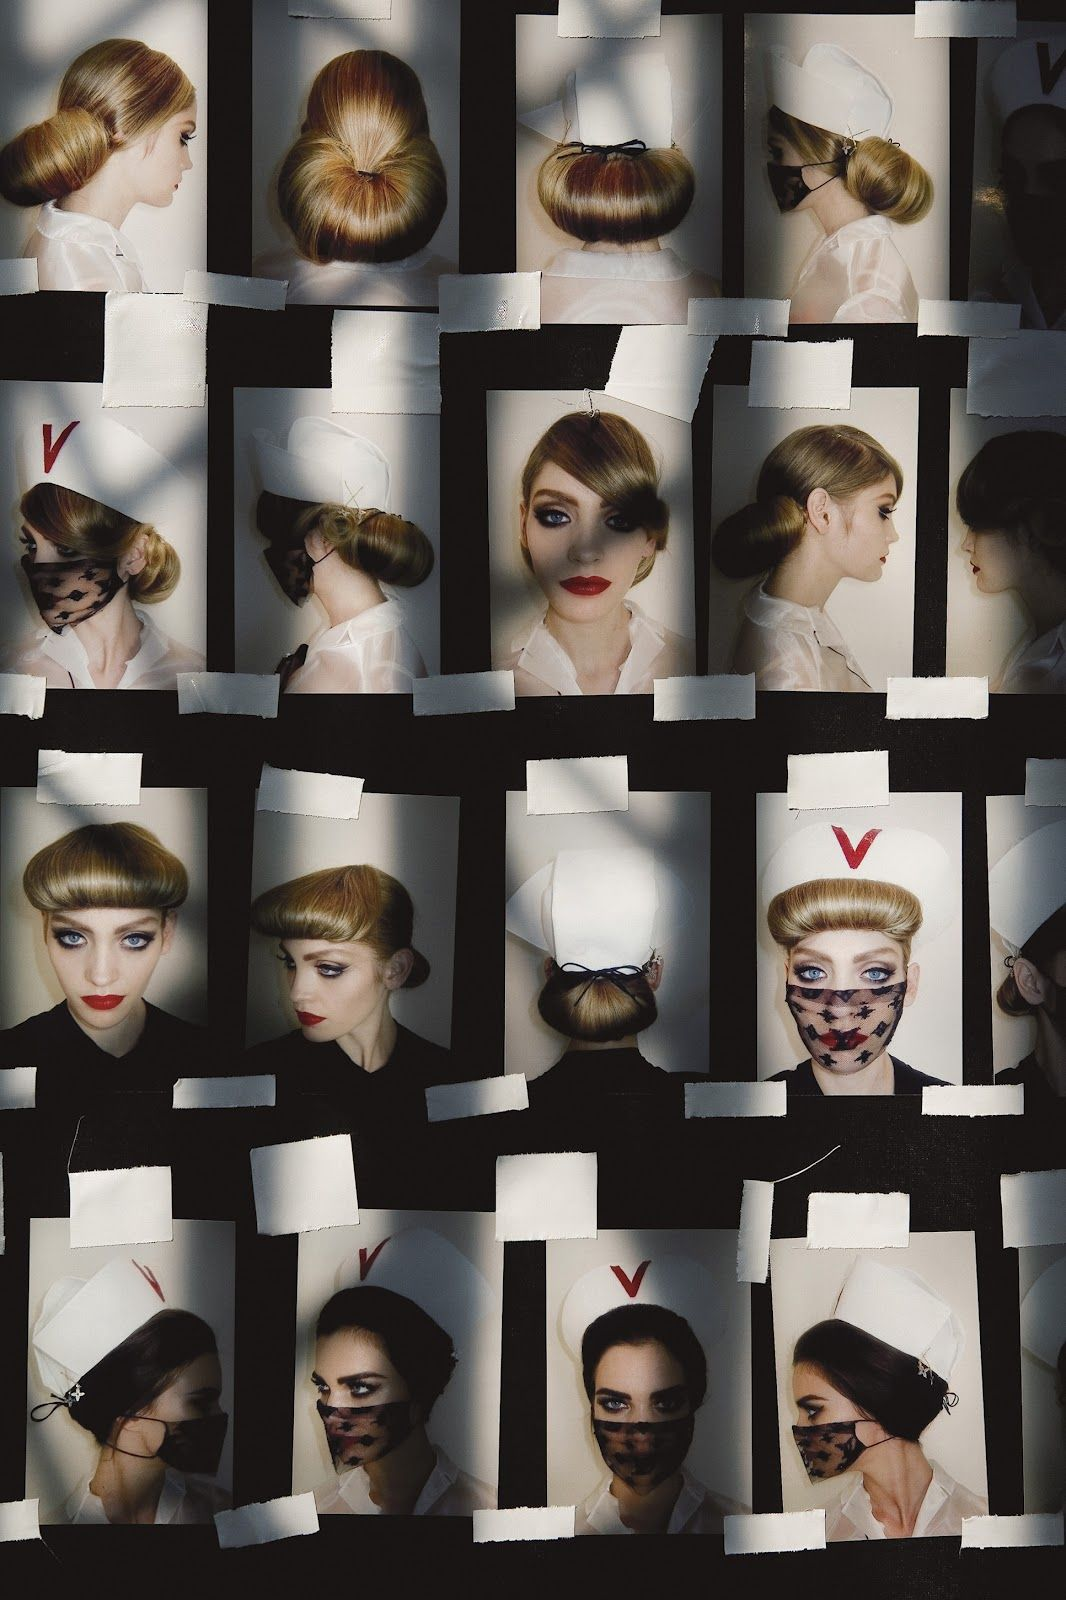 """Benoit PEVERELLI :: Polaroid sequence from S/S 2008 runway show """"Nurses"""" inspired by Richard Prince for Louis Vuitton"""